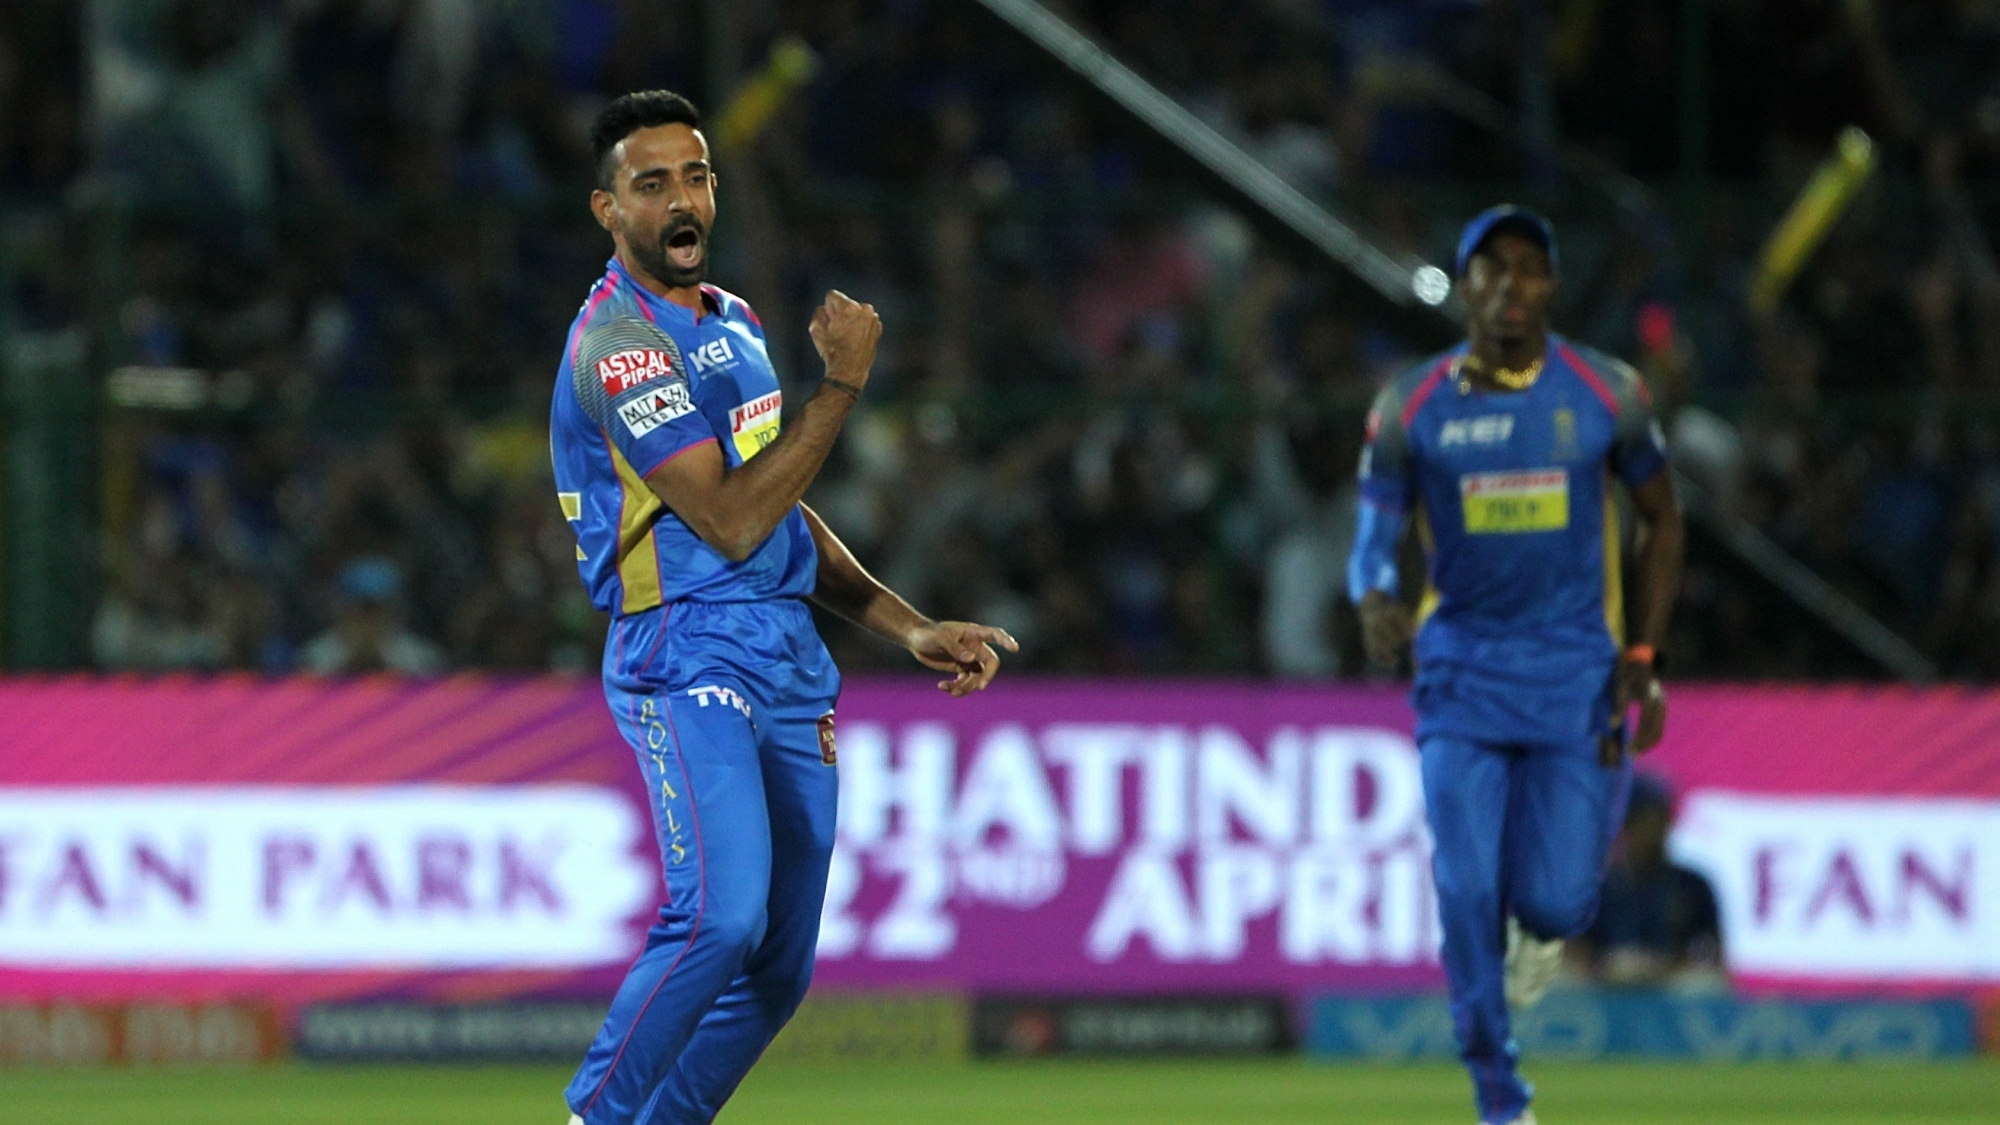 IPL 2018 Rajasthan Royals now have the momentum and belief, says Dhawal Kulkarni